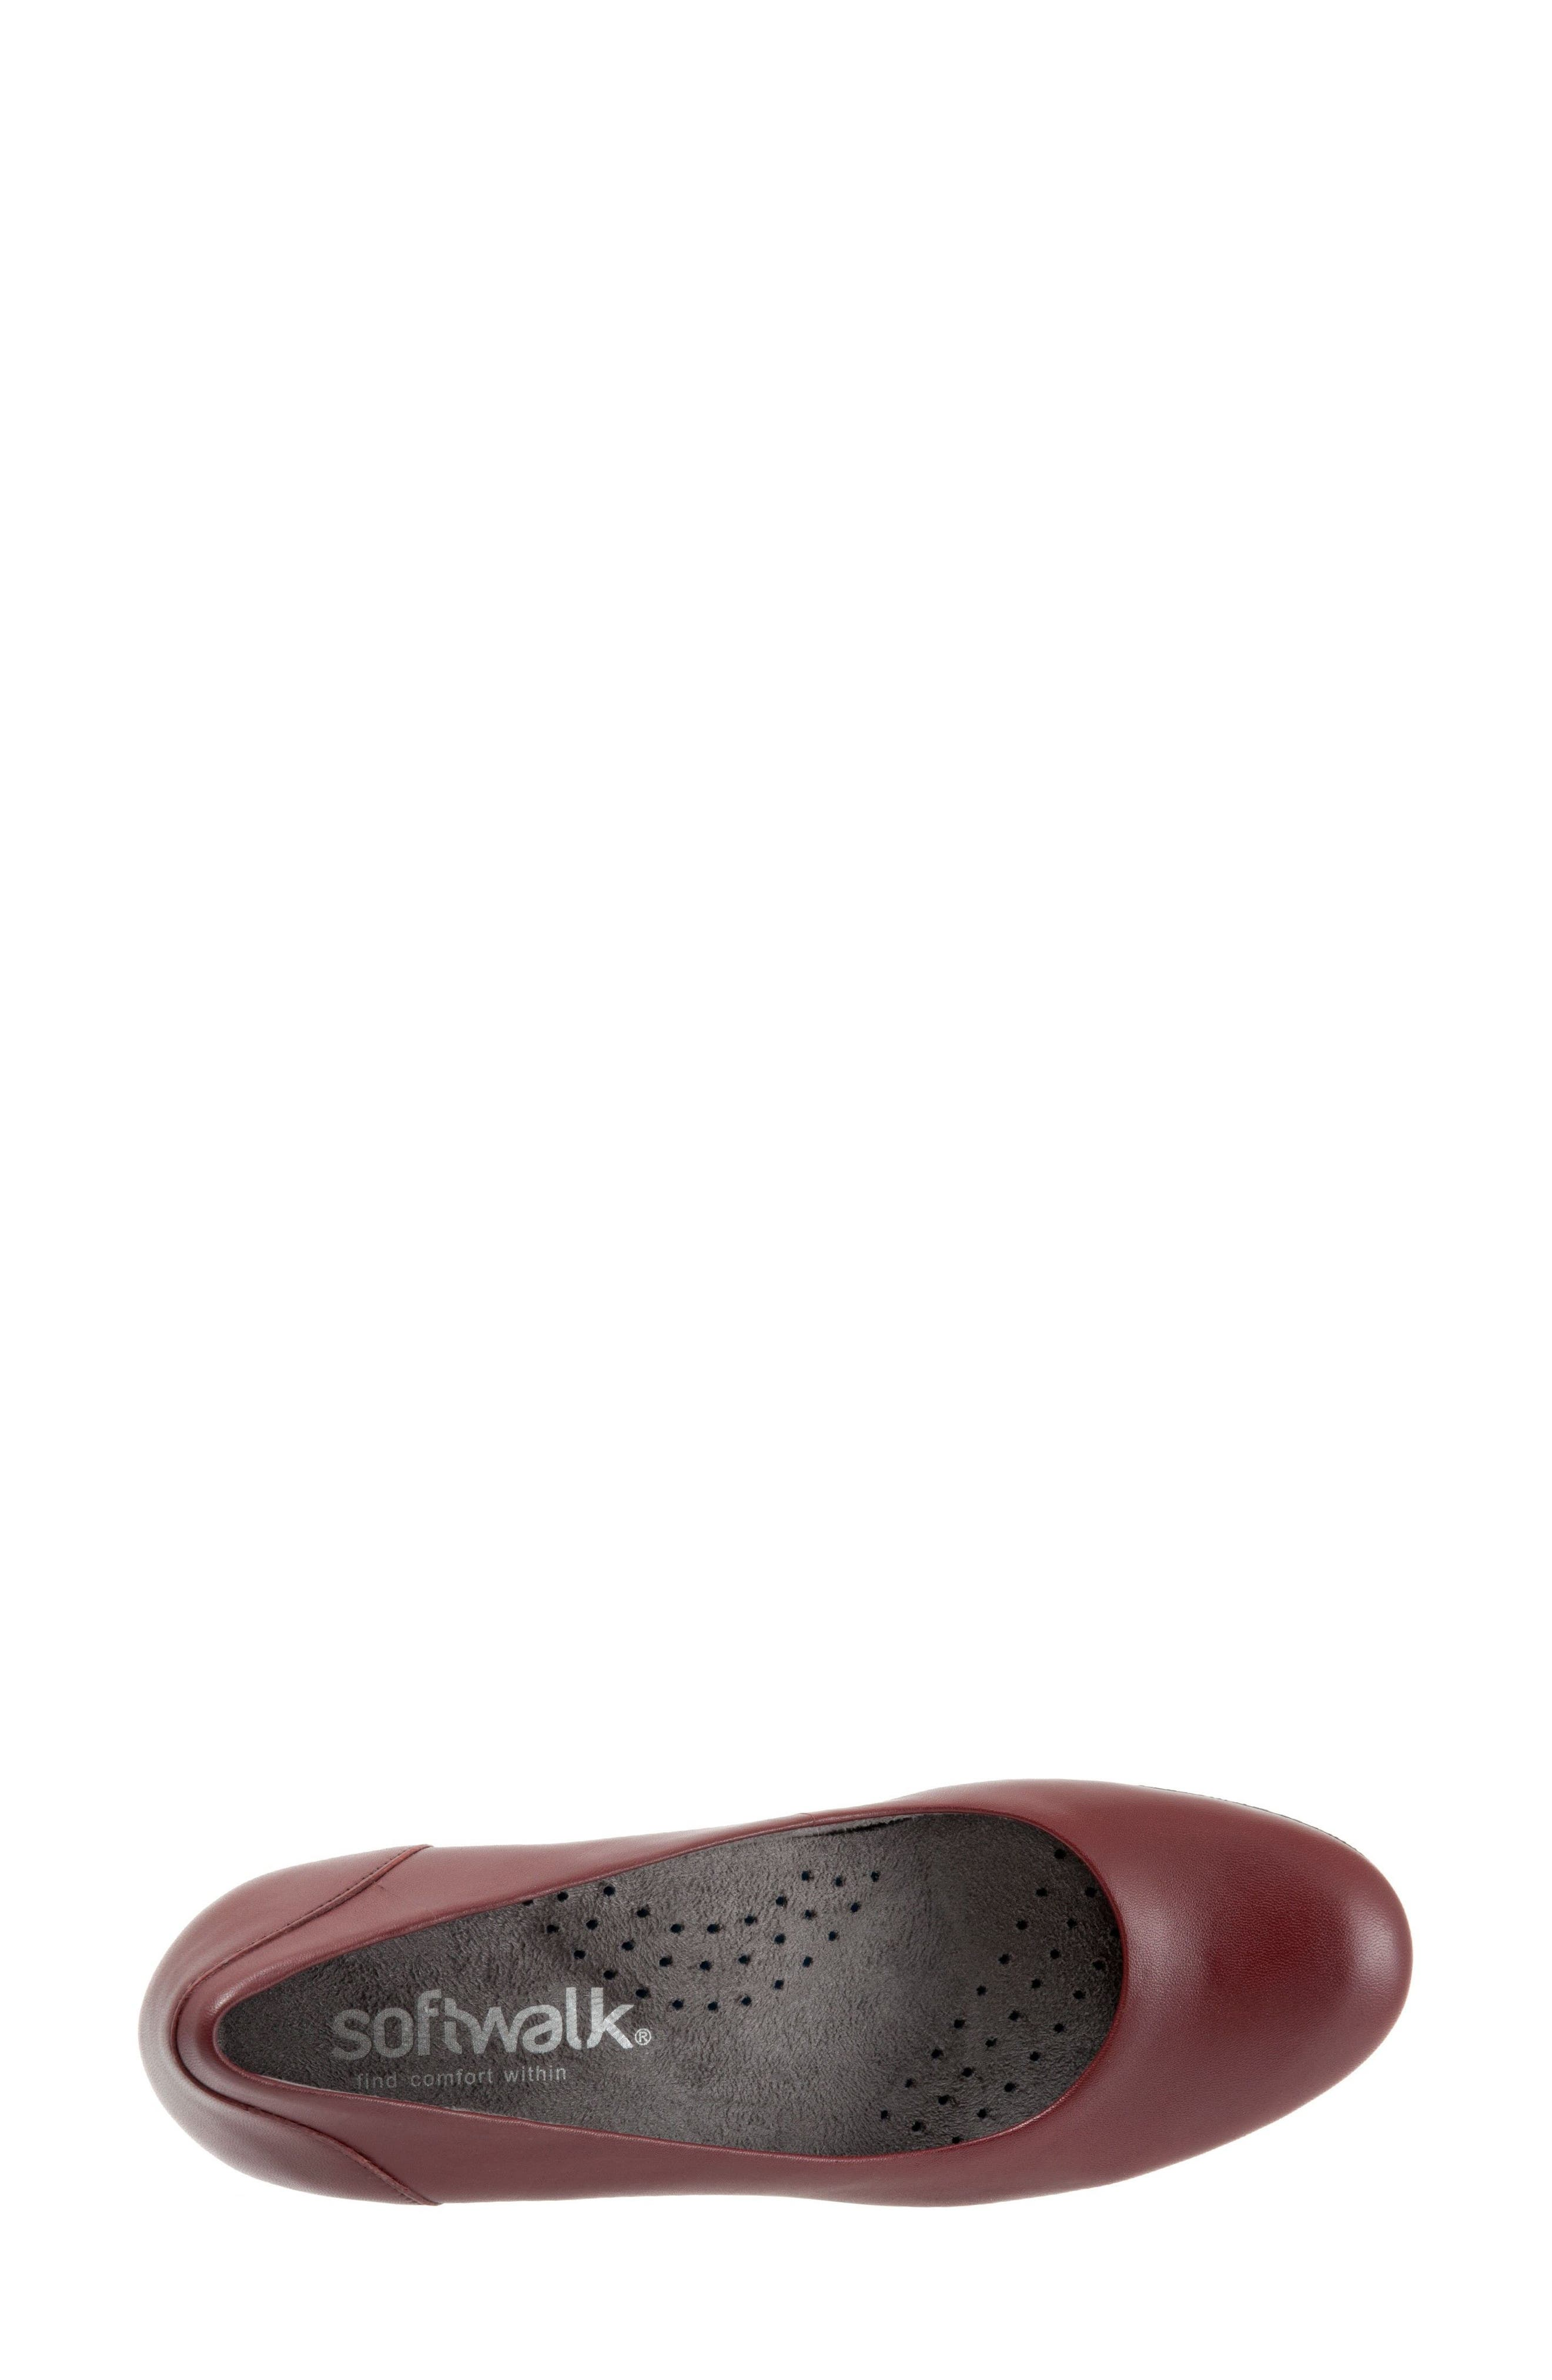 Imperial II Pump,                             Alternate thumbnail 2, color,                             Dark Red Leather